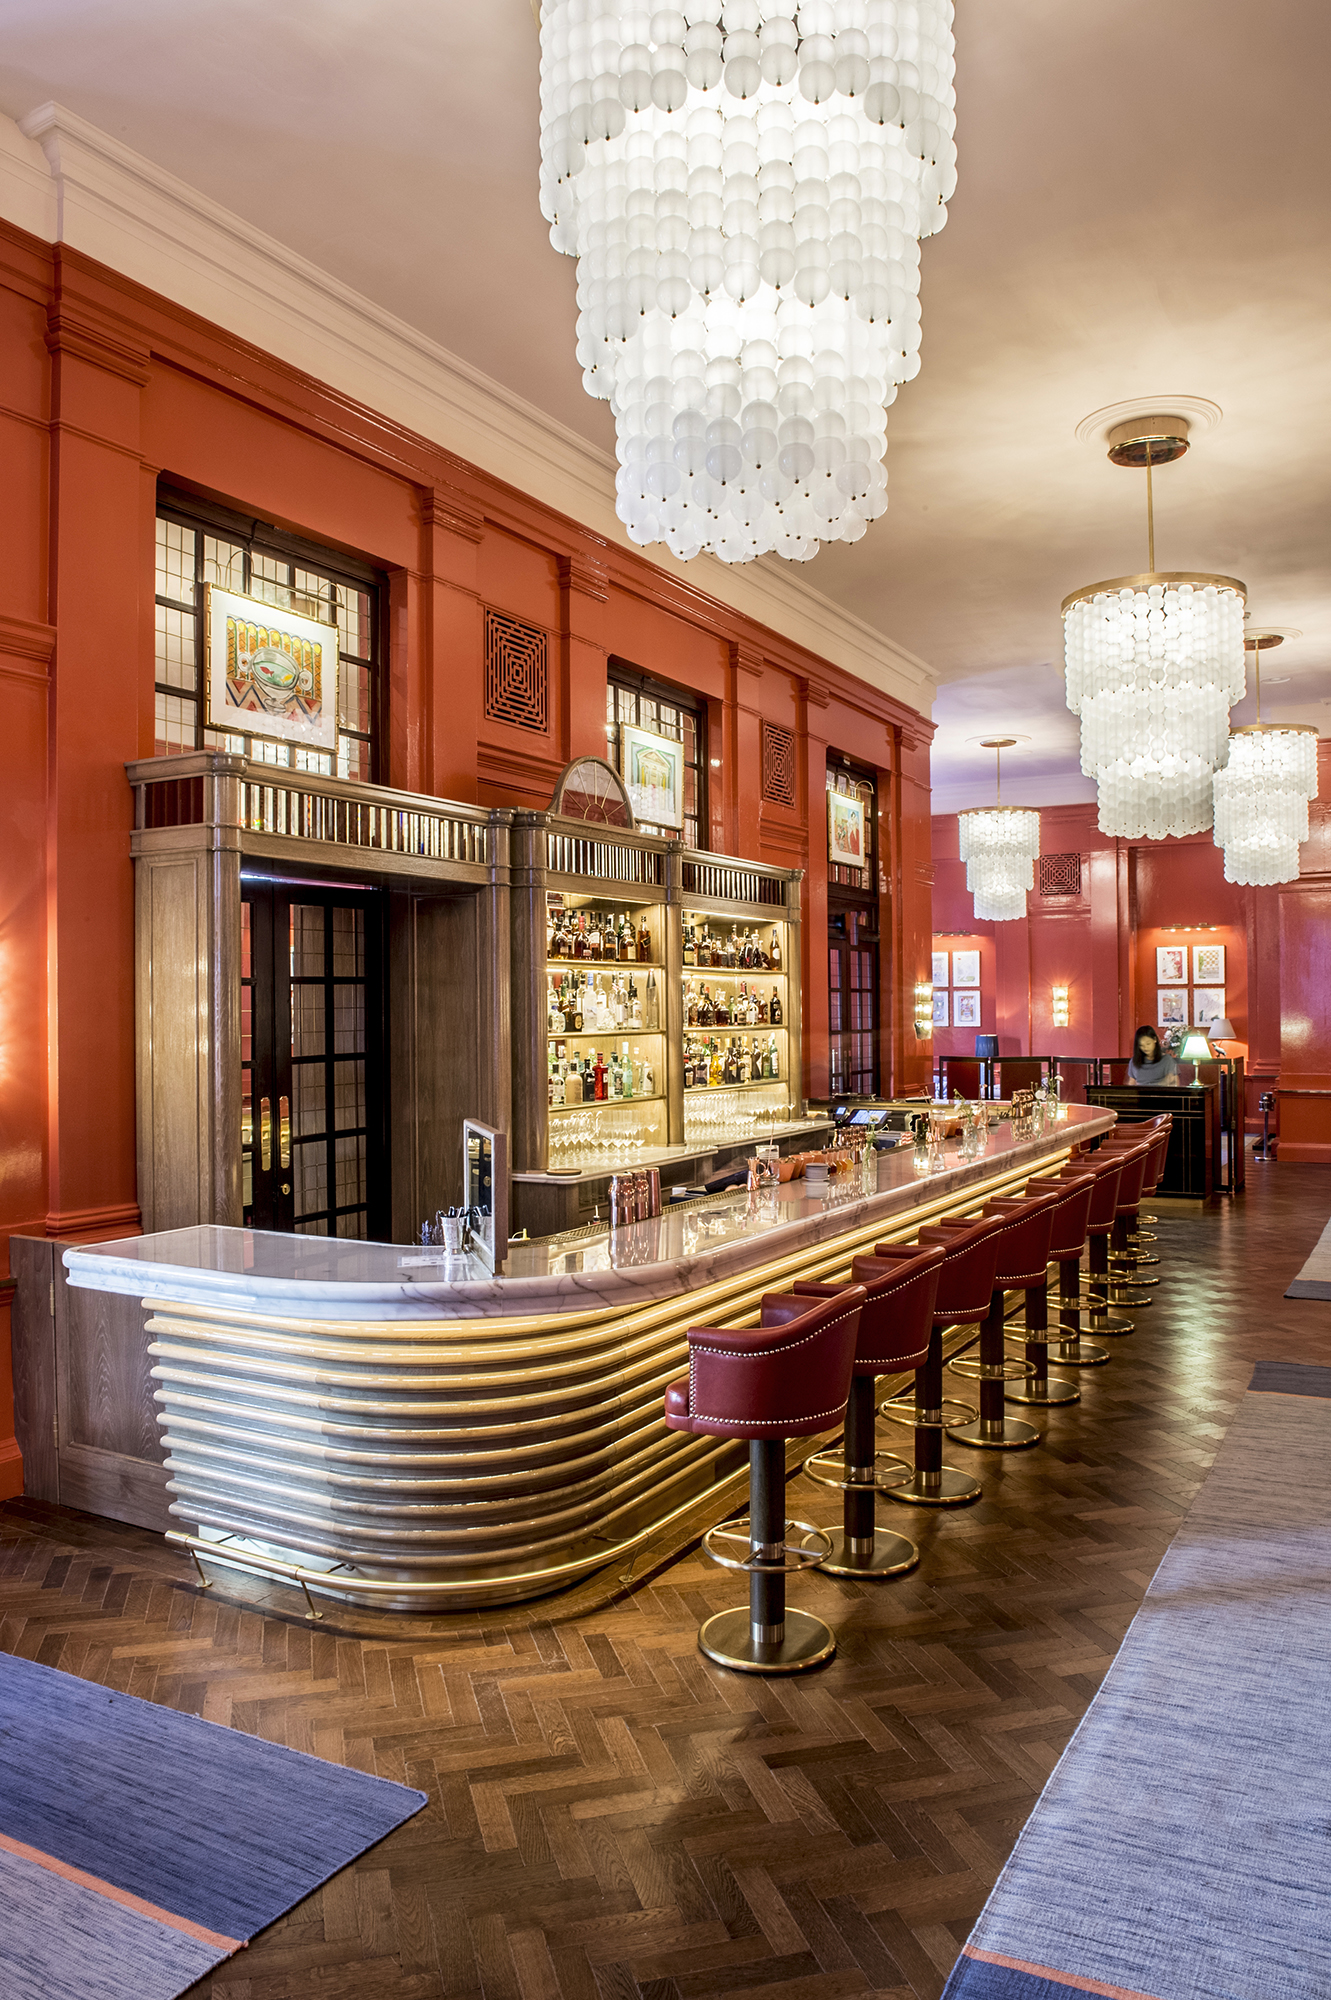 Cocktails and opulence at The Coral Room at The Bloomsbury Hotel